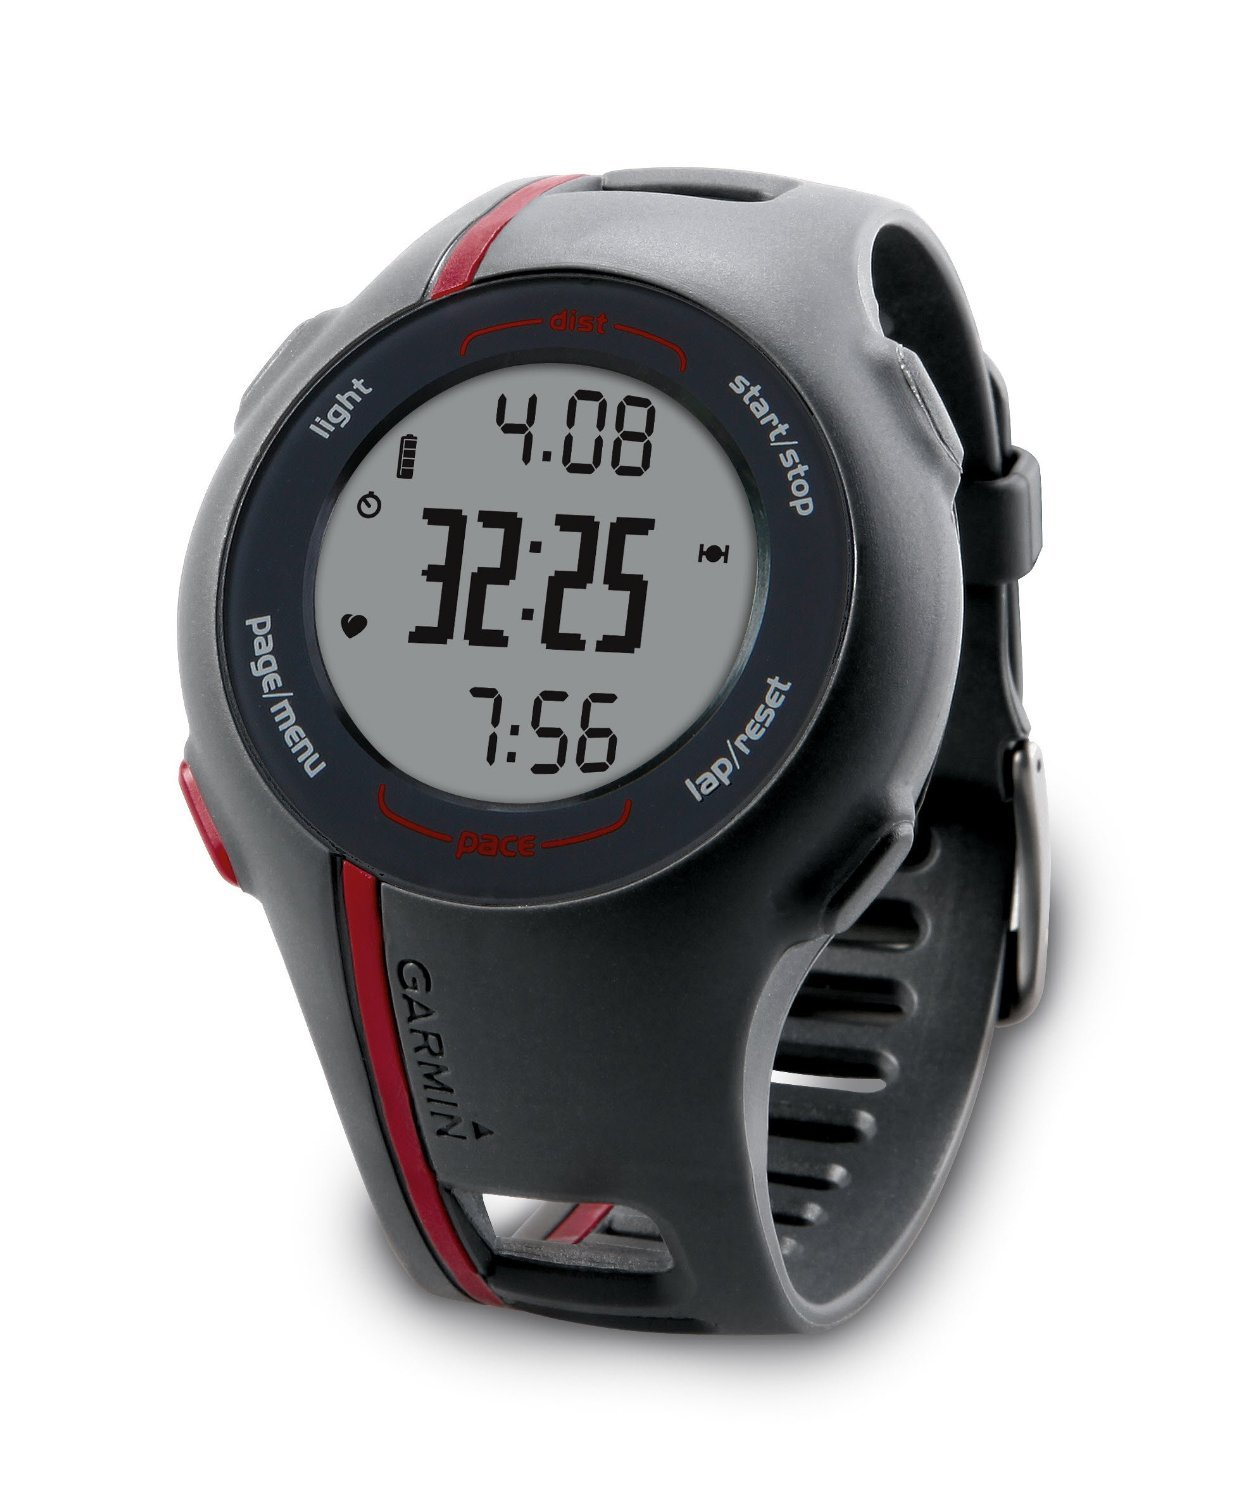 Garmin Forerunner 110 GPS Enabled Watch Image 3